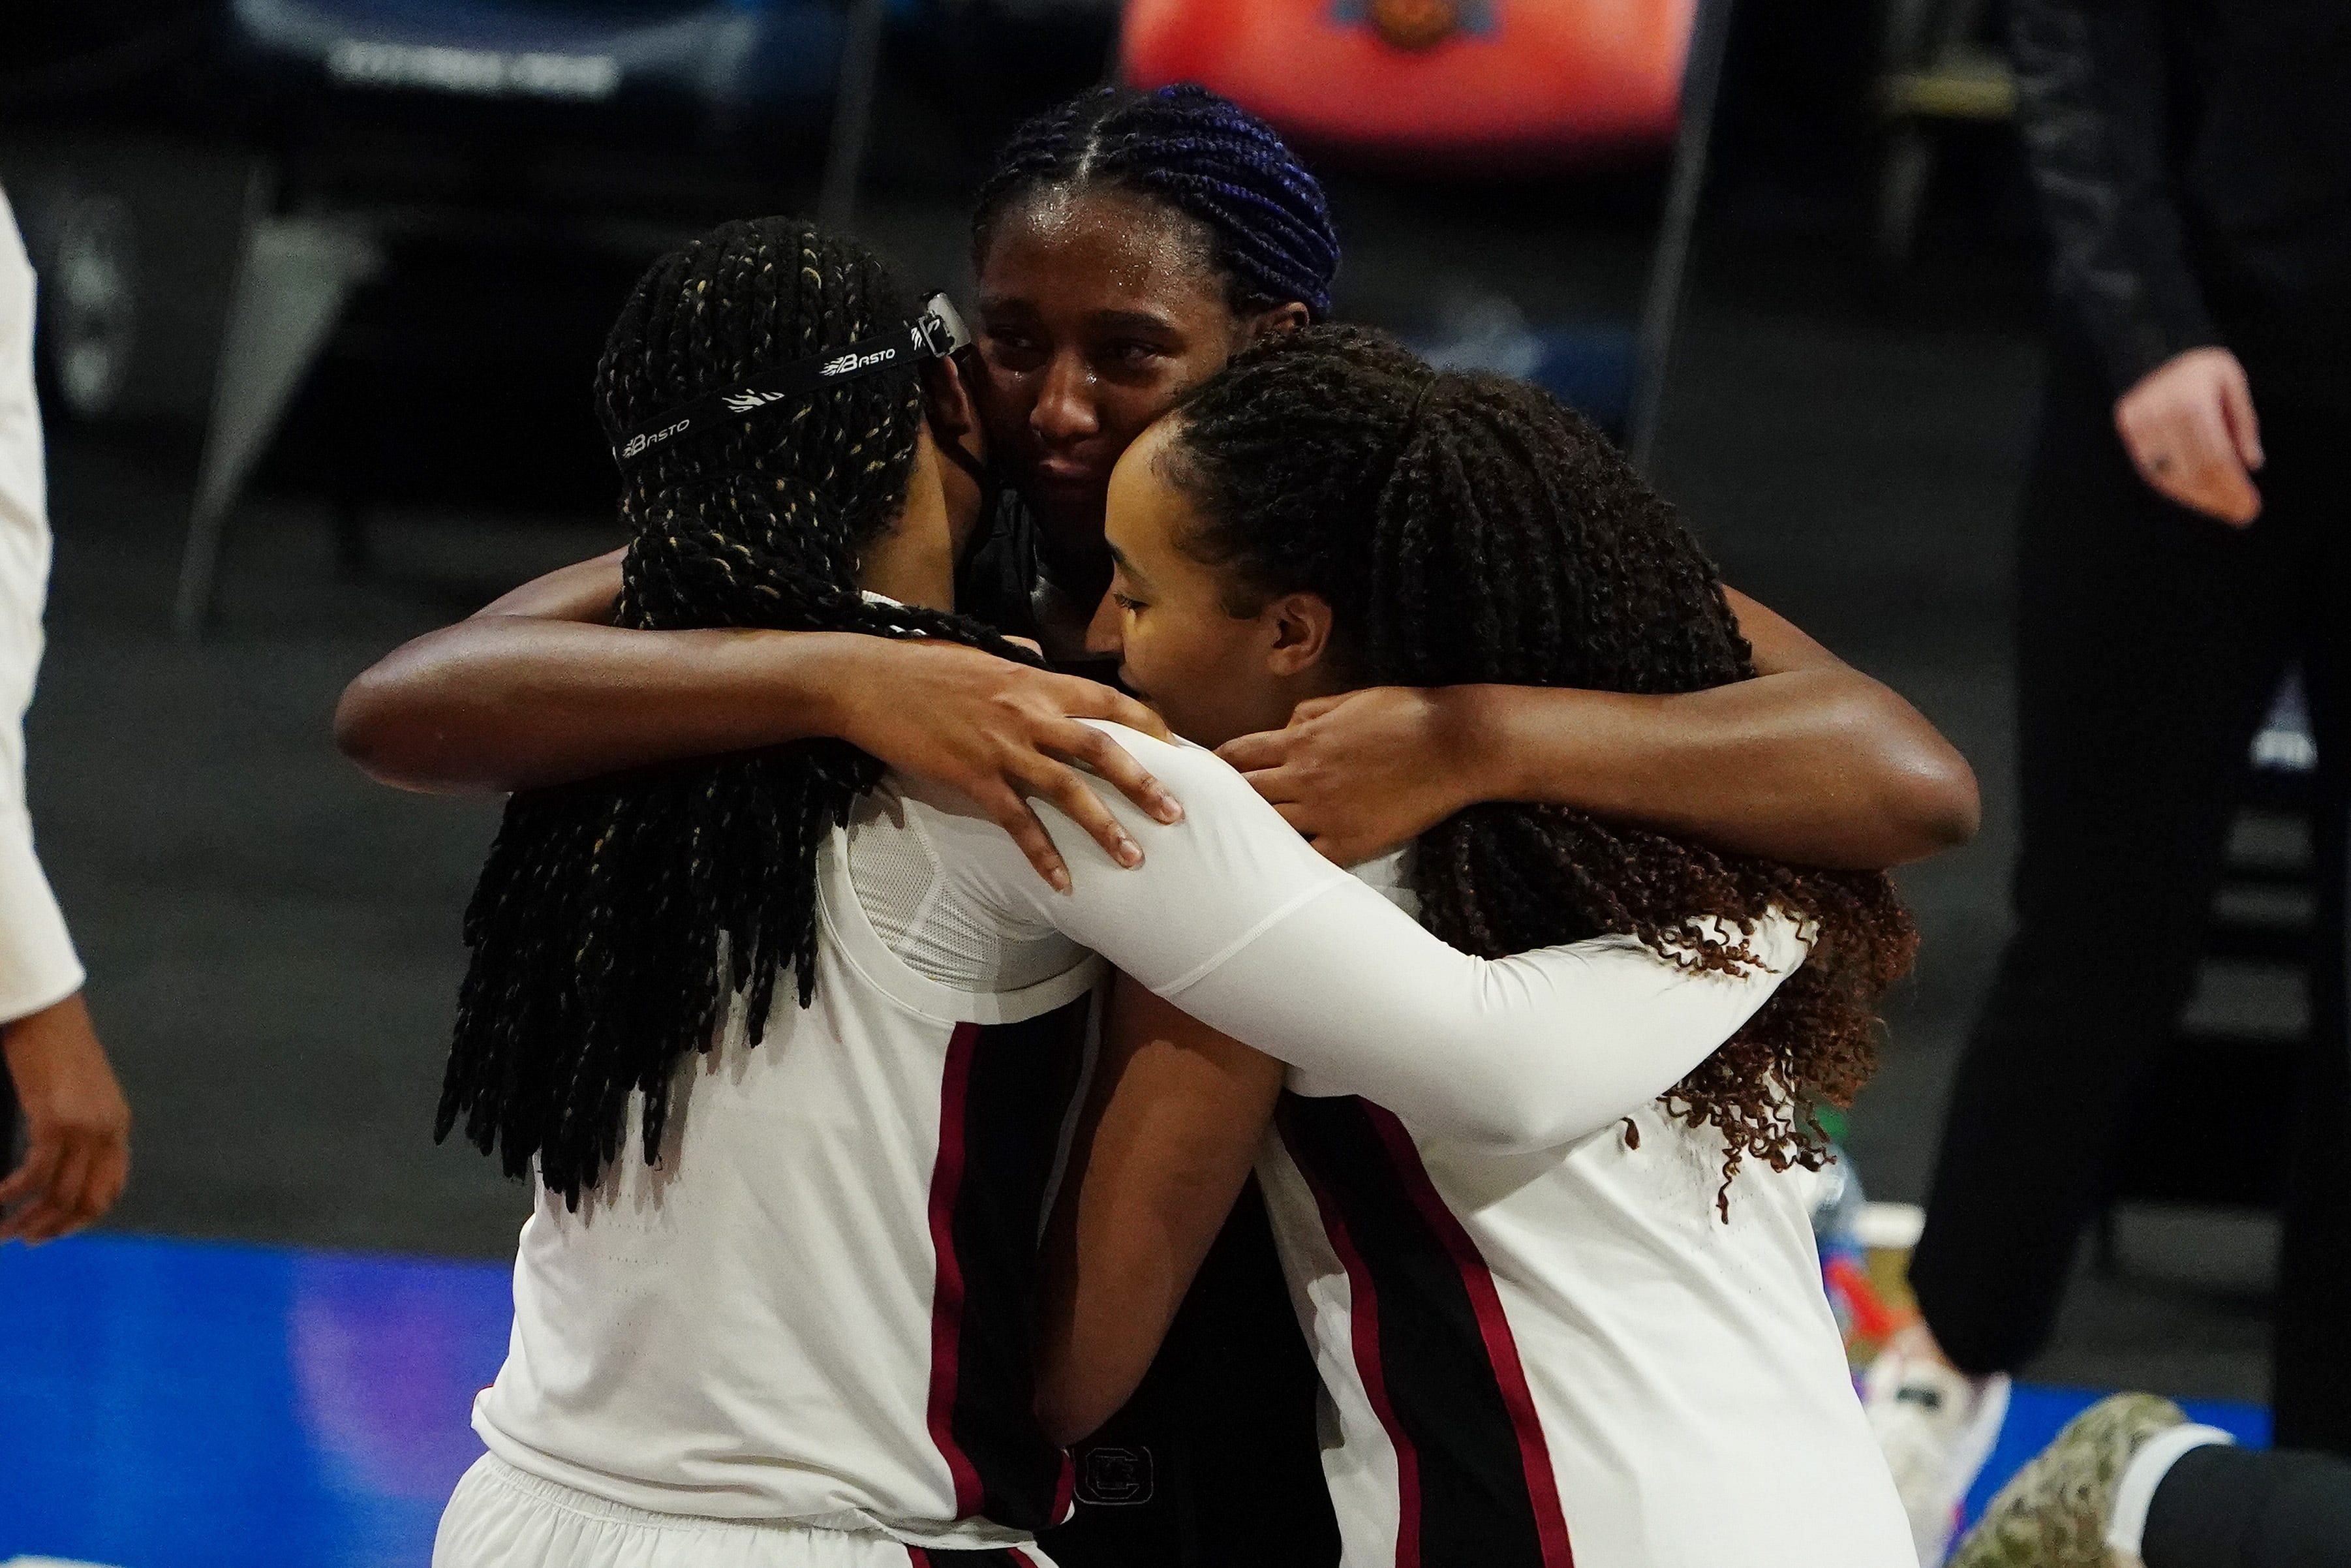 Analysis: Final Four matchup between Stanford, South Carolina shining example of best of women s sports